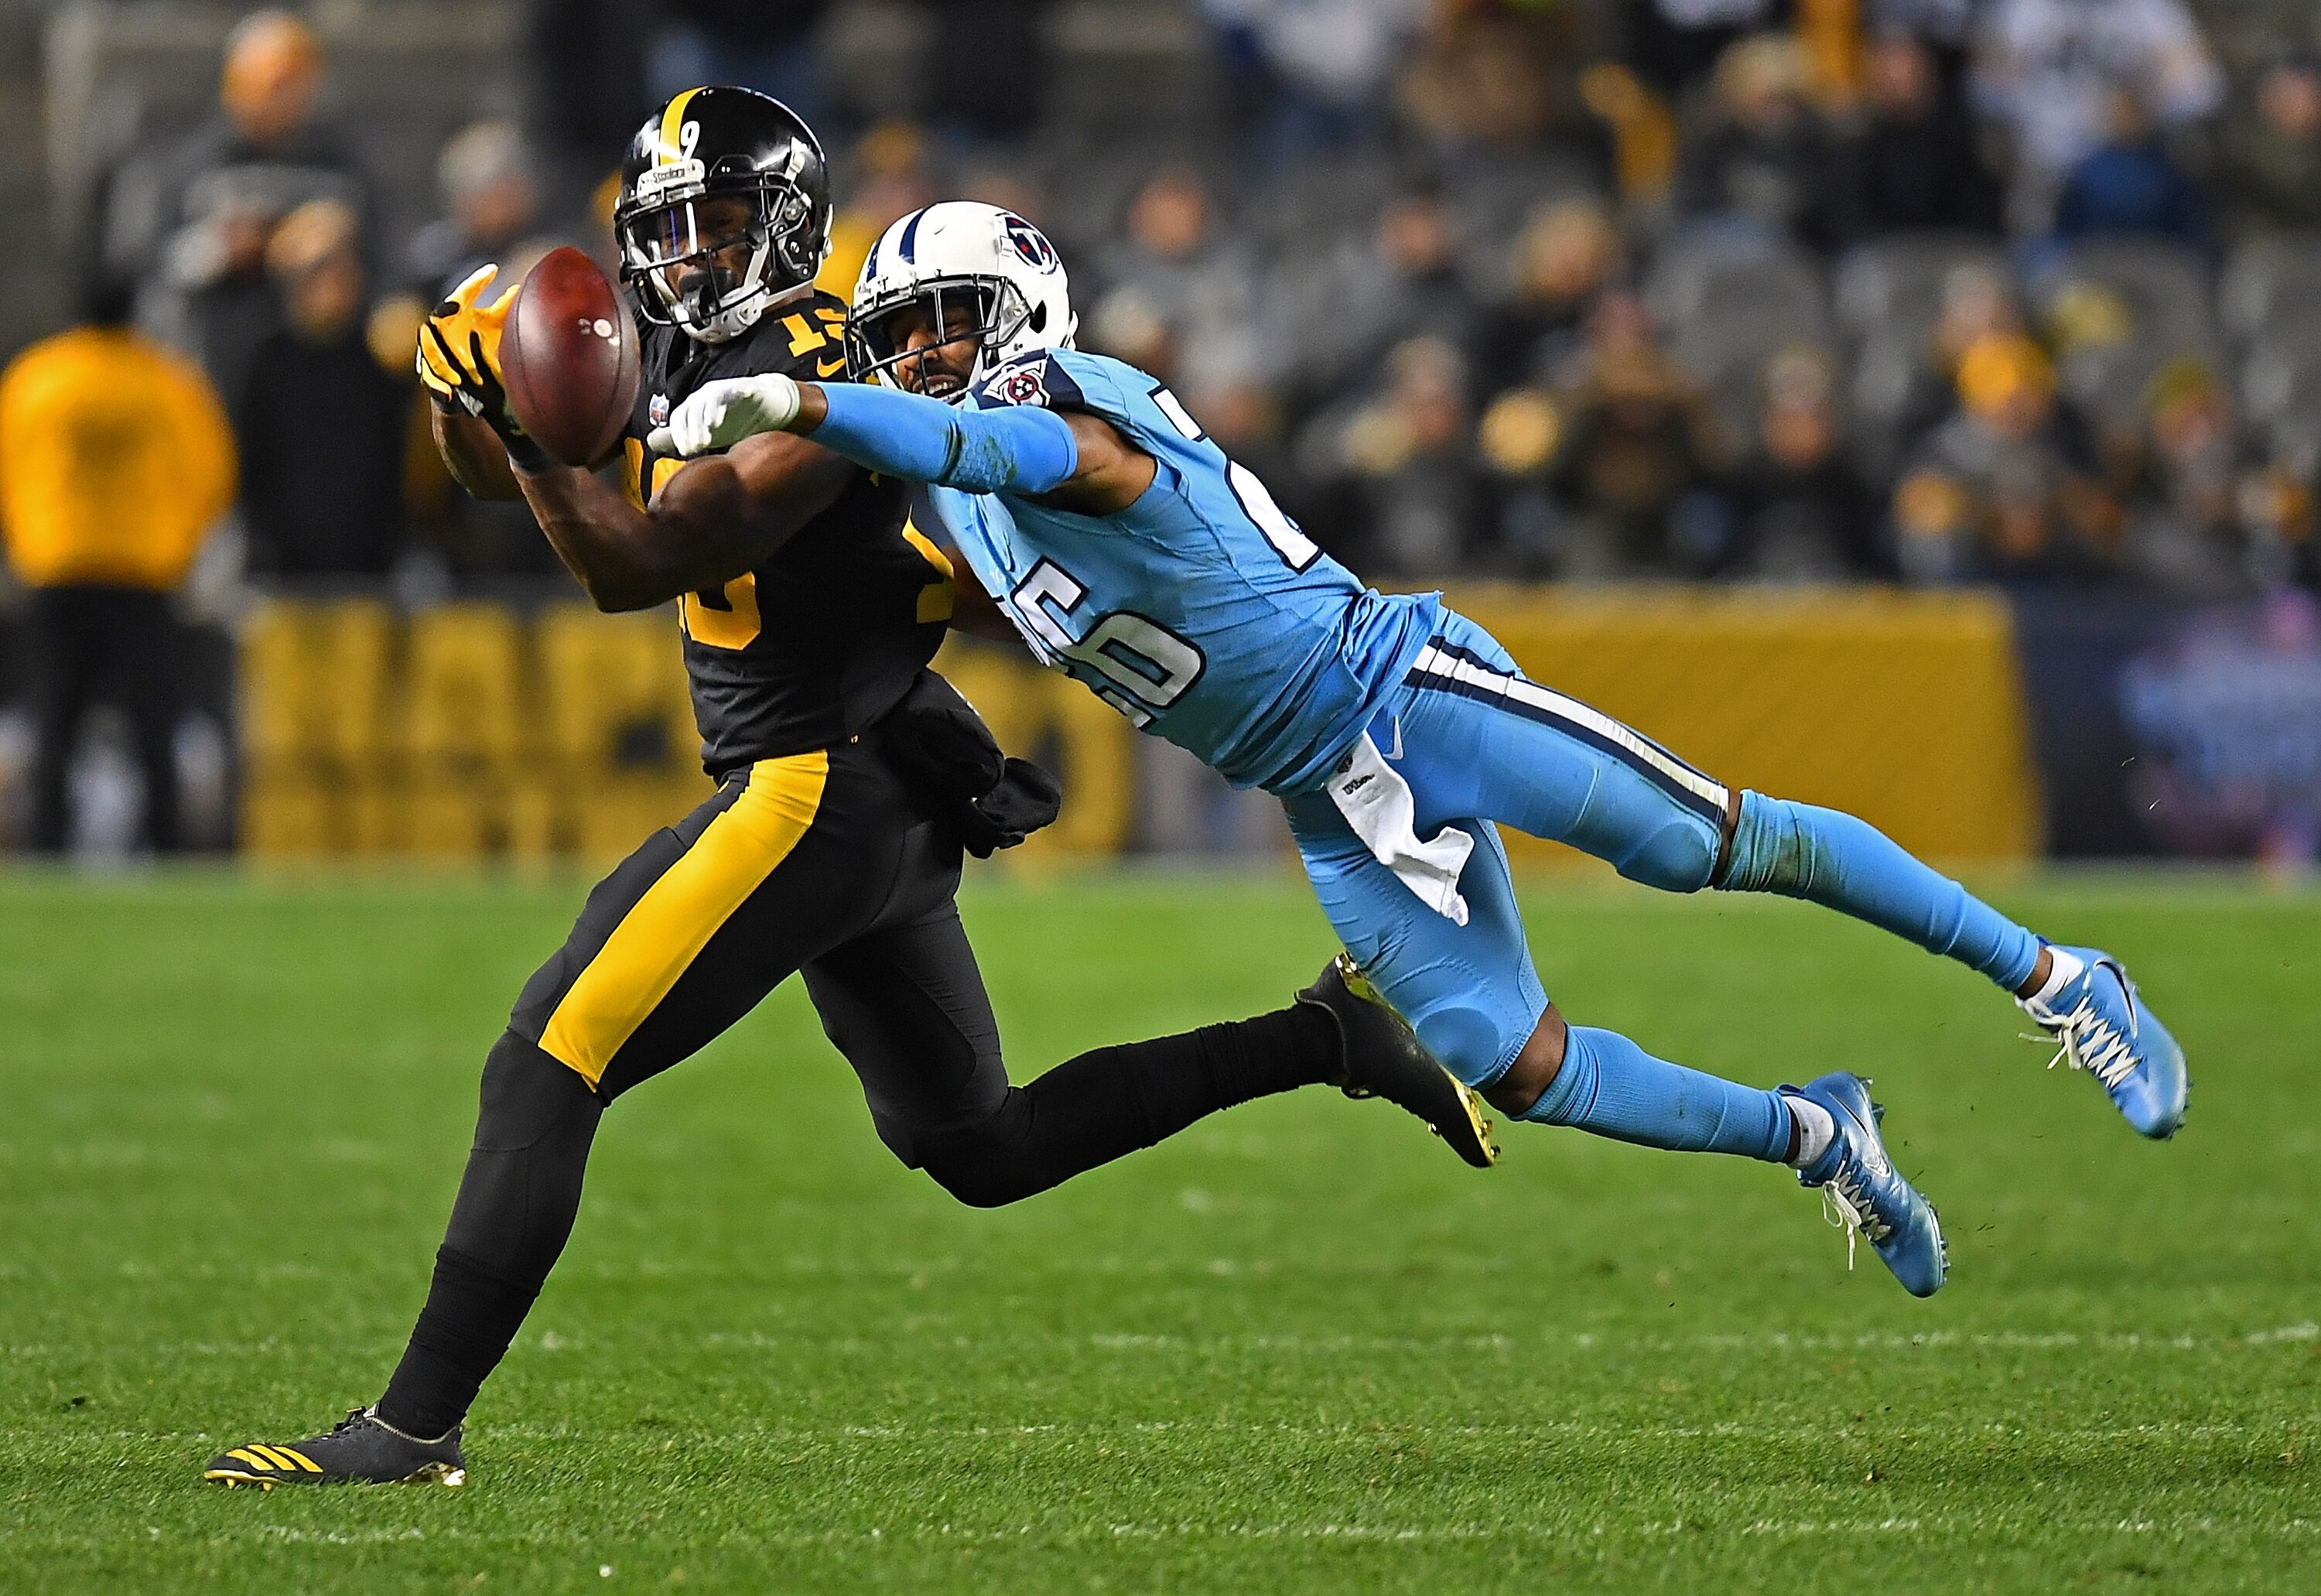 875128560-tennessee-titans-v-pittsburgh-steelers.jpg